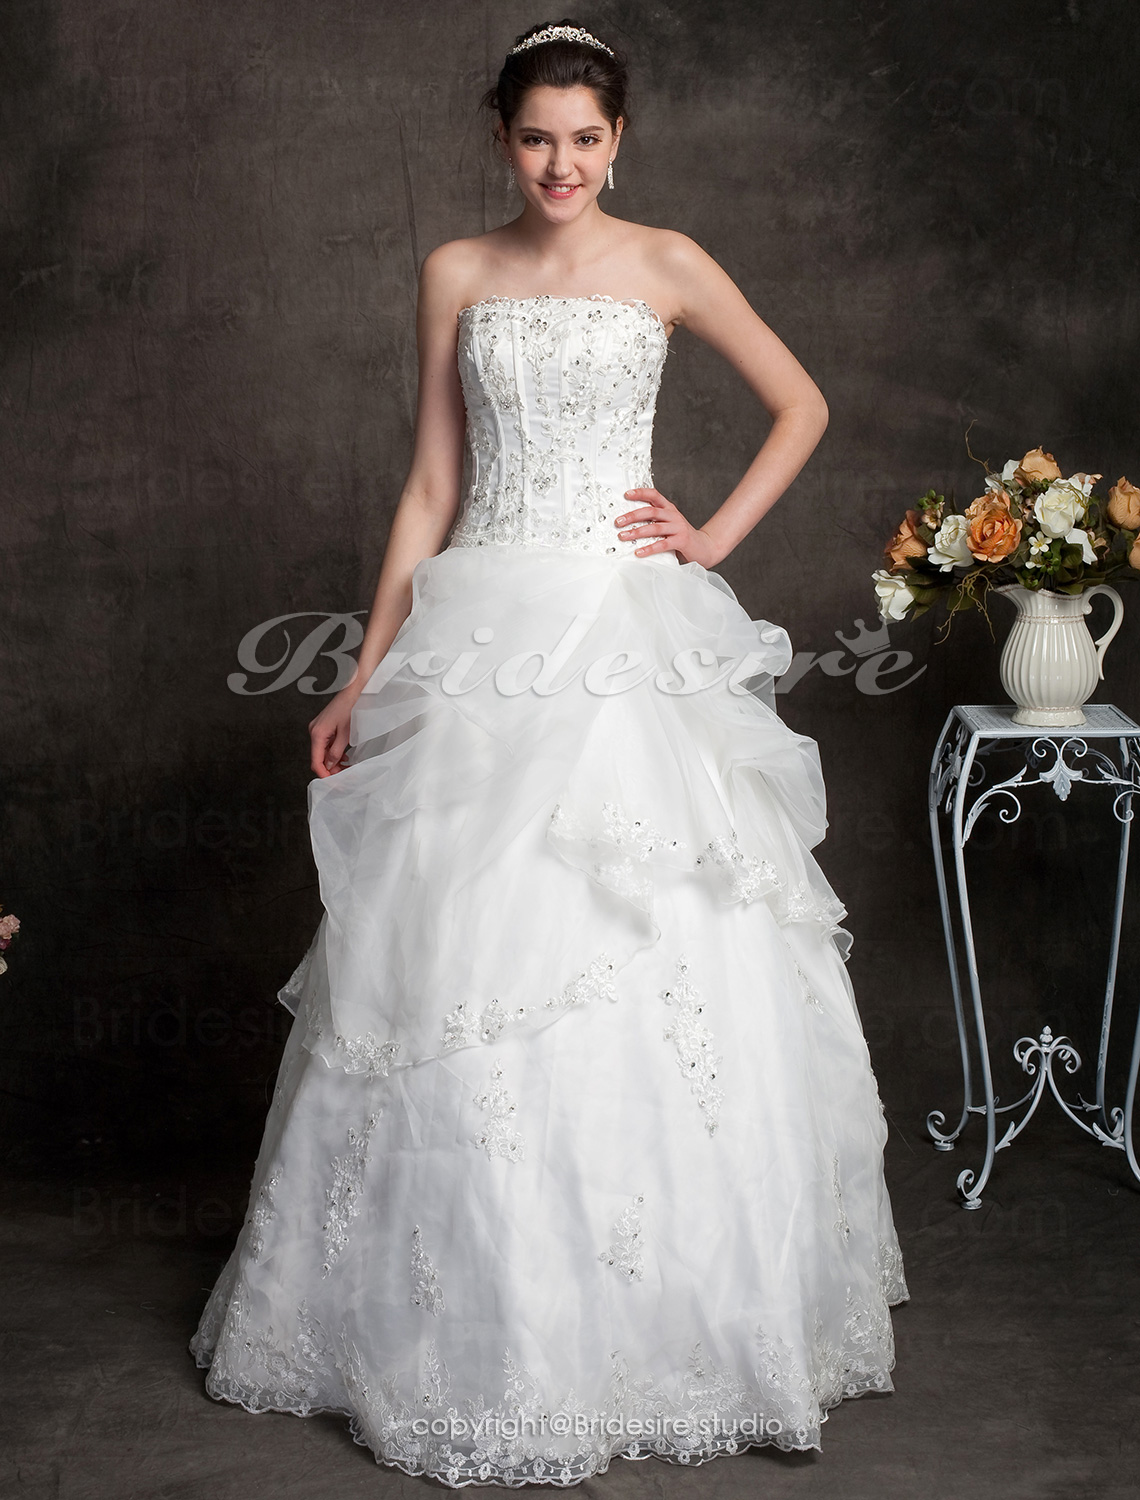 A-line Floor-length Scalloped-Edged Neckline Organza Strapless Wedding Dress